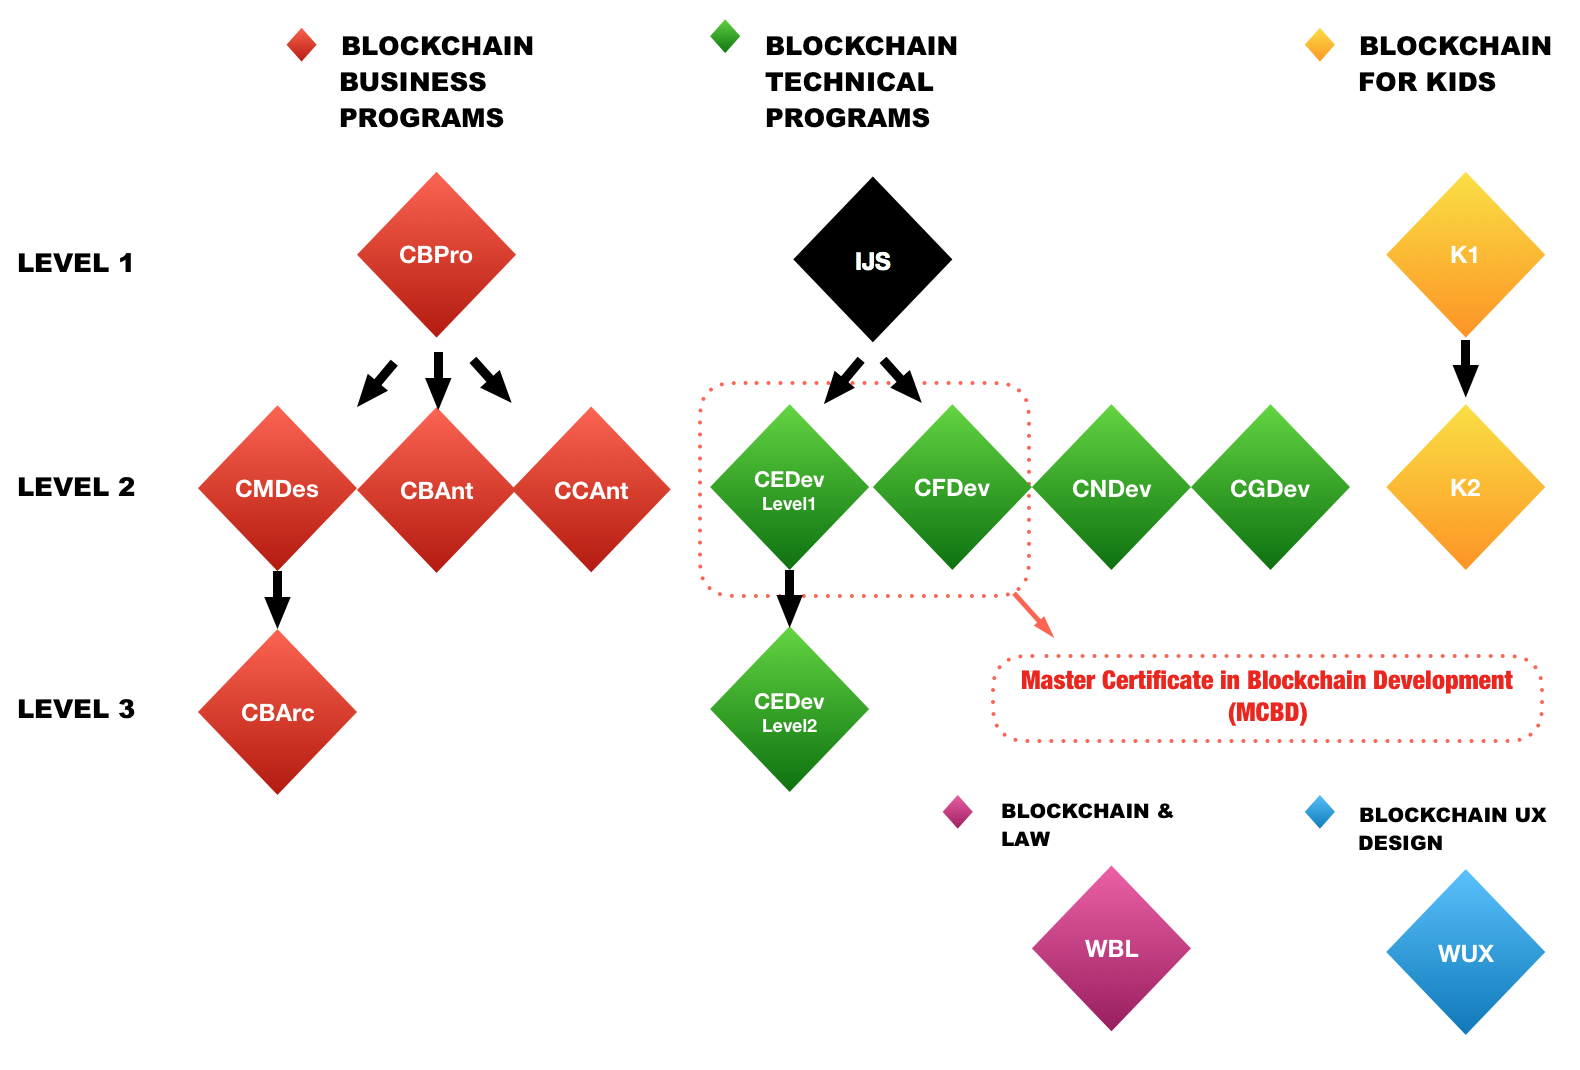 The Blockchain Hub Programs and Certifications in Toronto